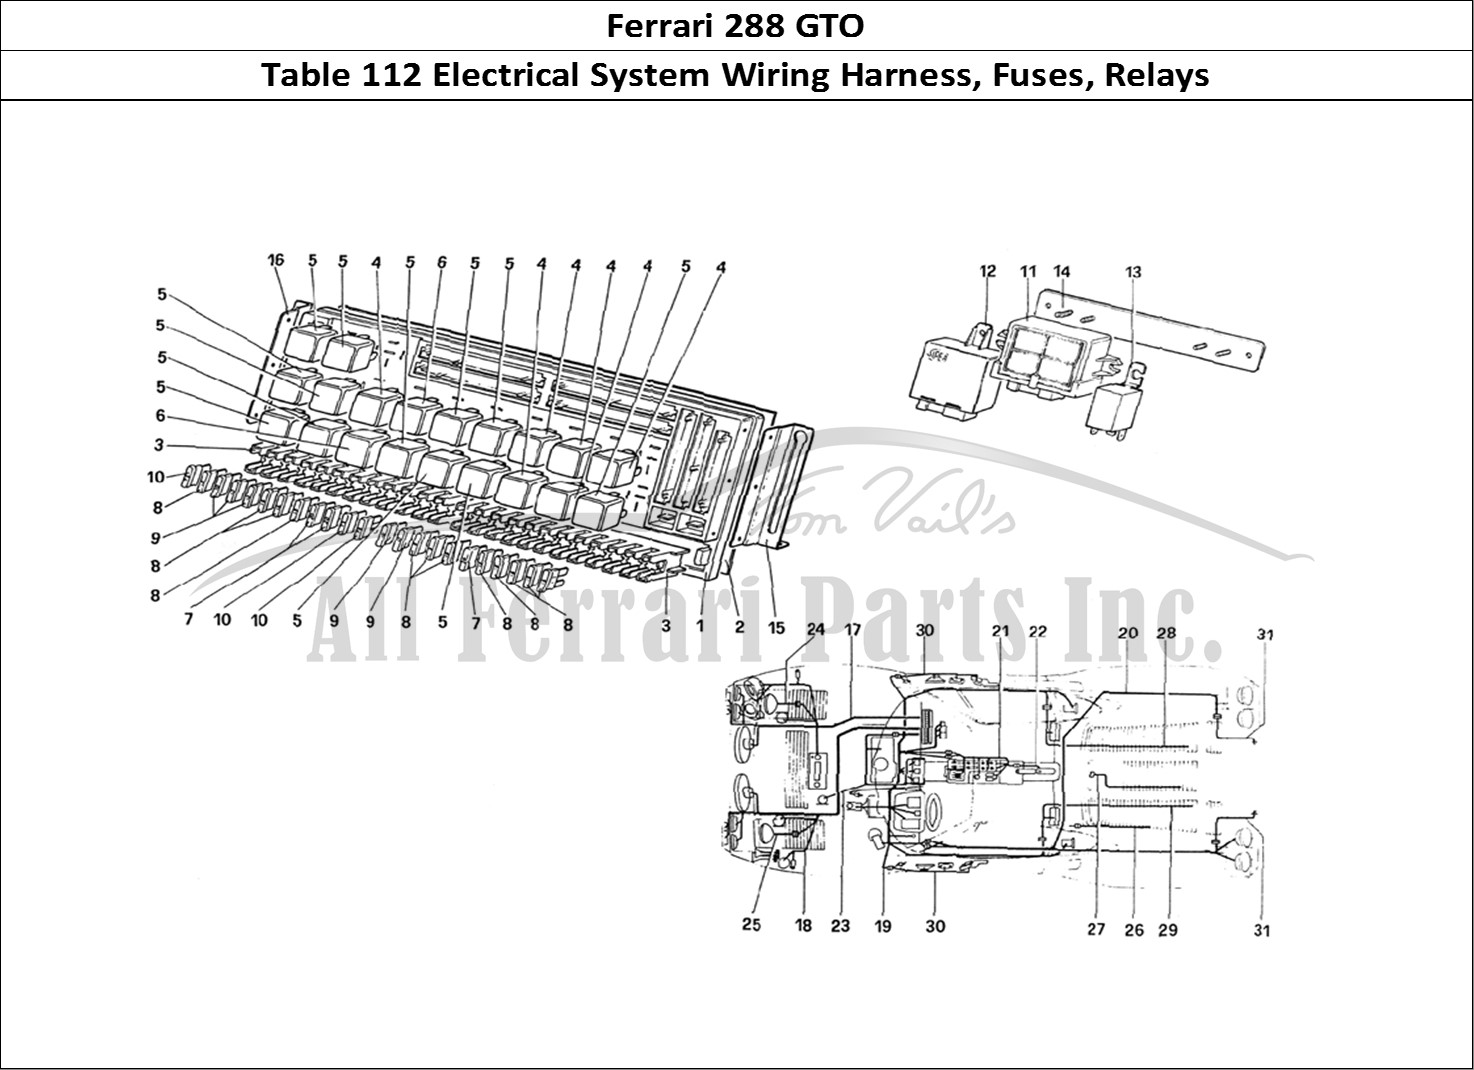 buy original ferrari 288 gto 112 electrical system wiring harness  fuses  relays ferrari parts